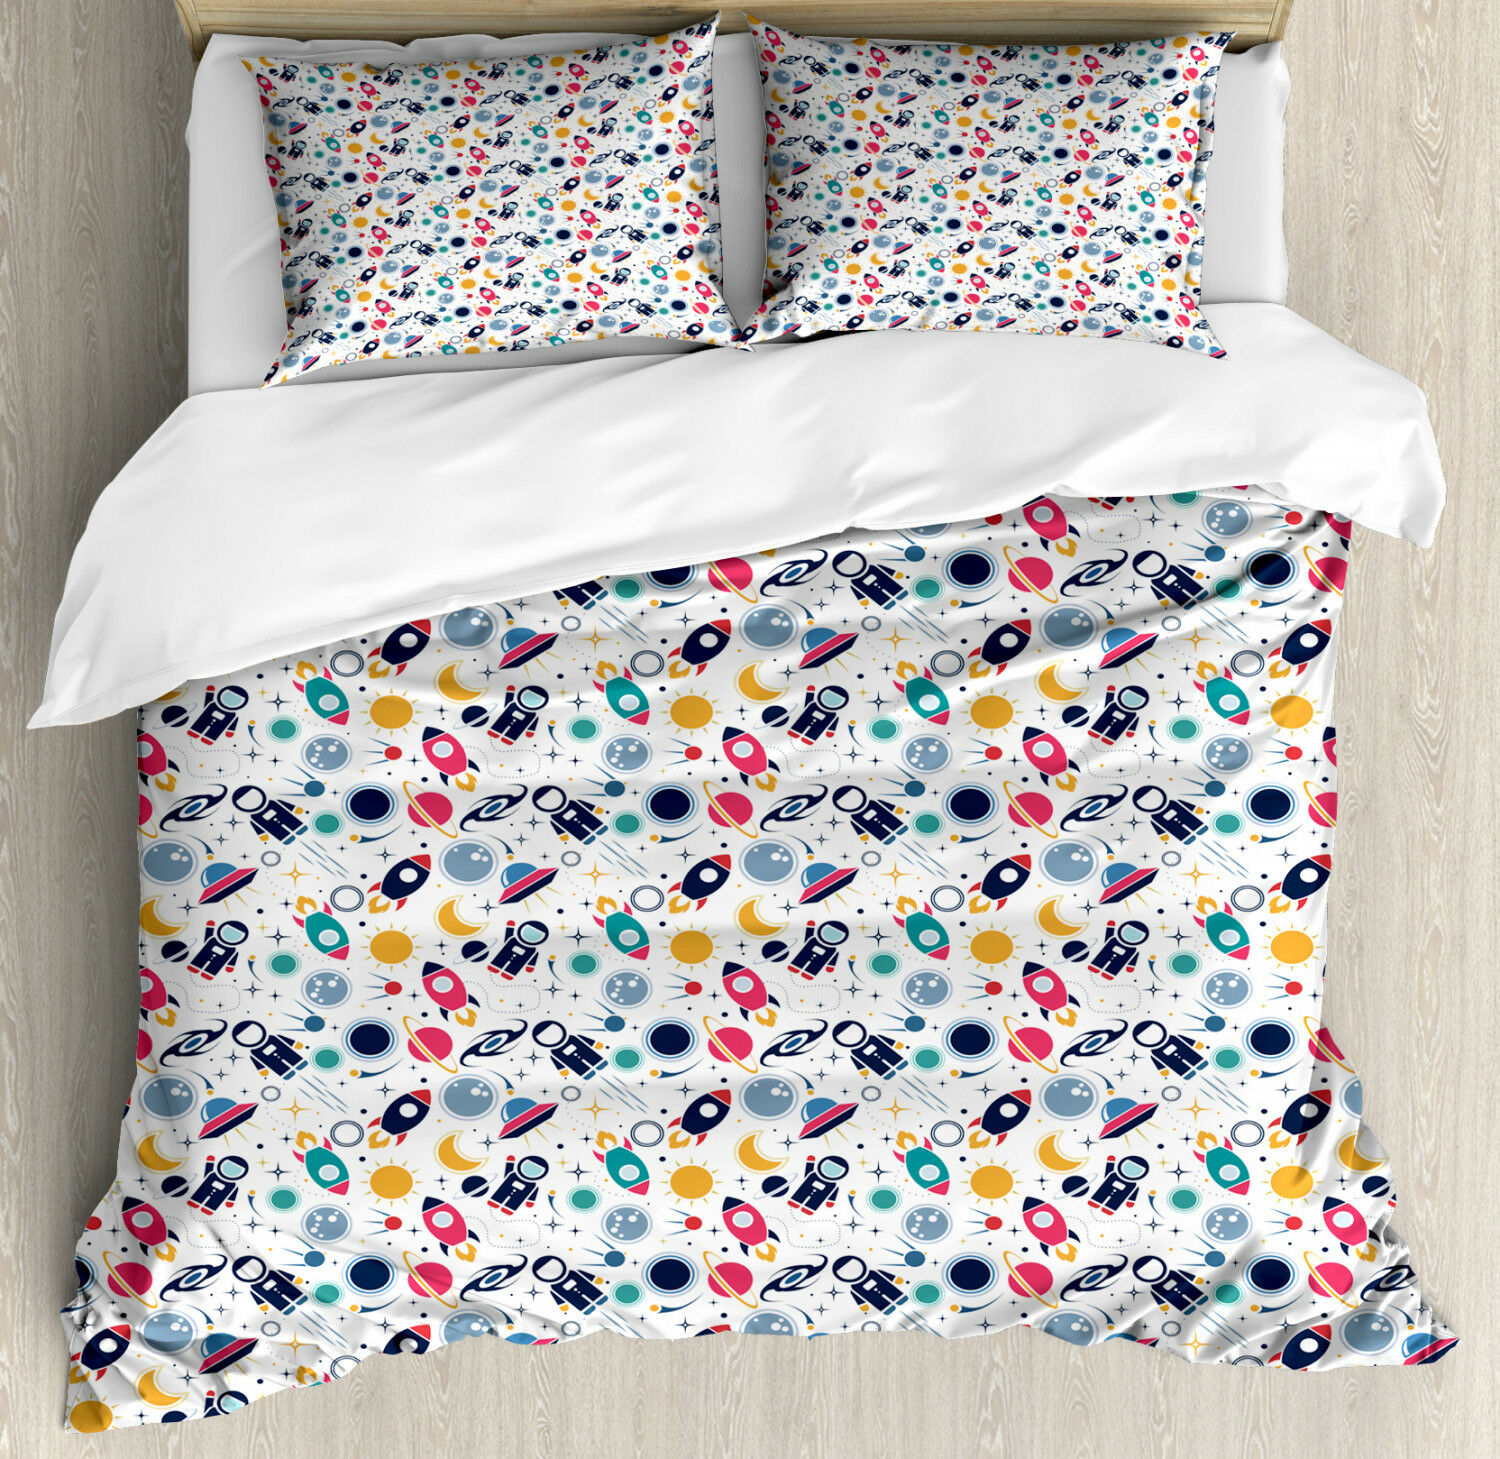 Spaceship Duvet Cover Set with Pillow Shams Space Silhouettes Print